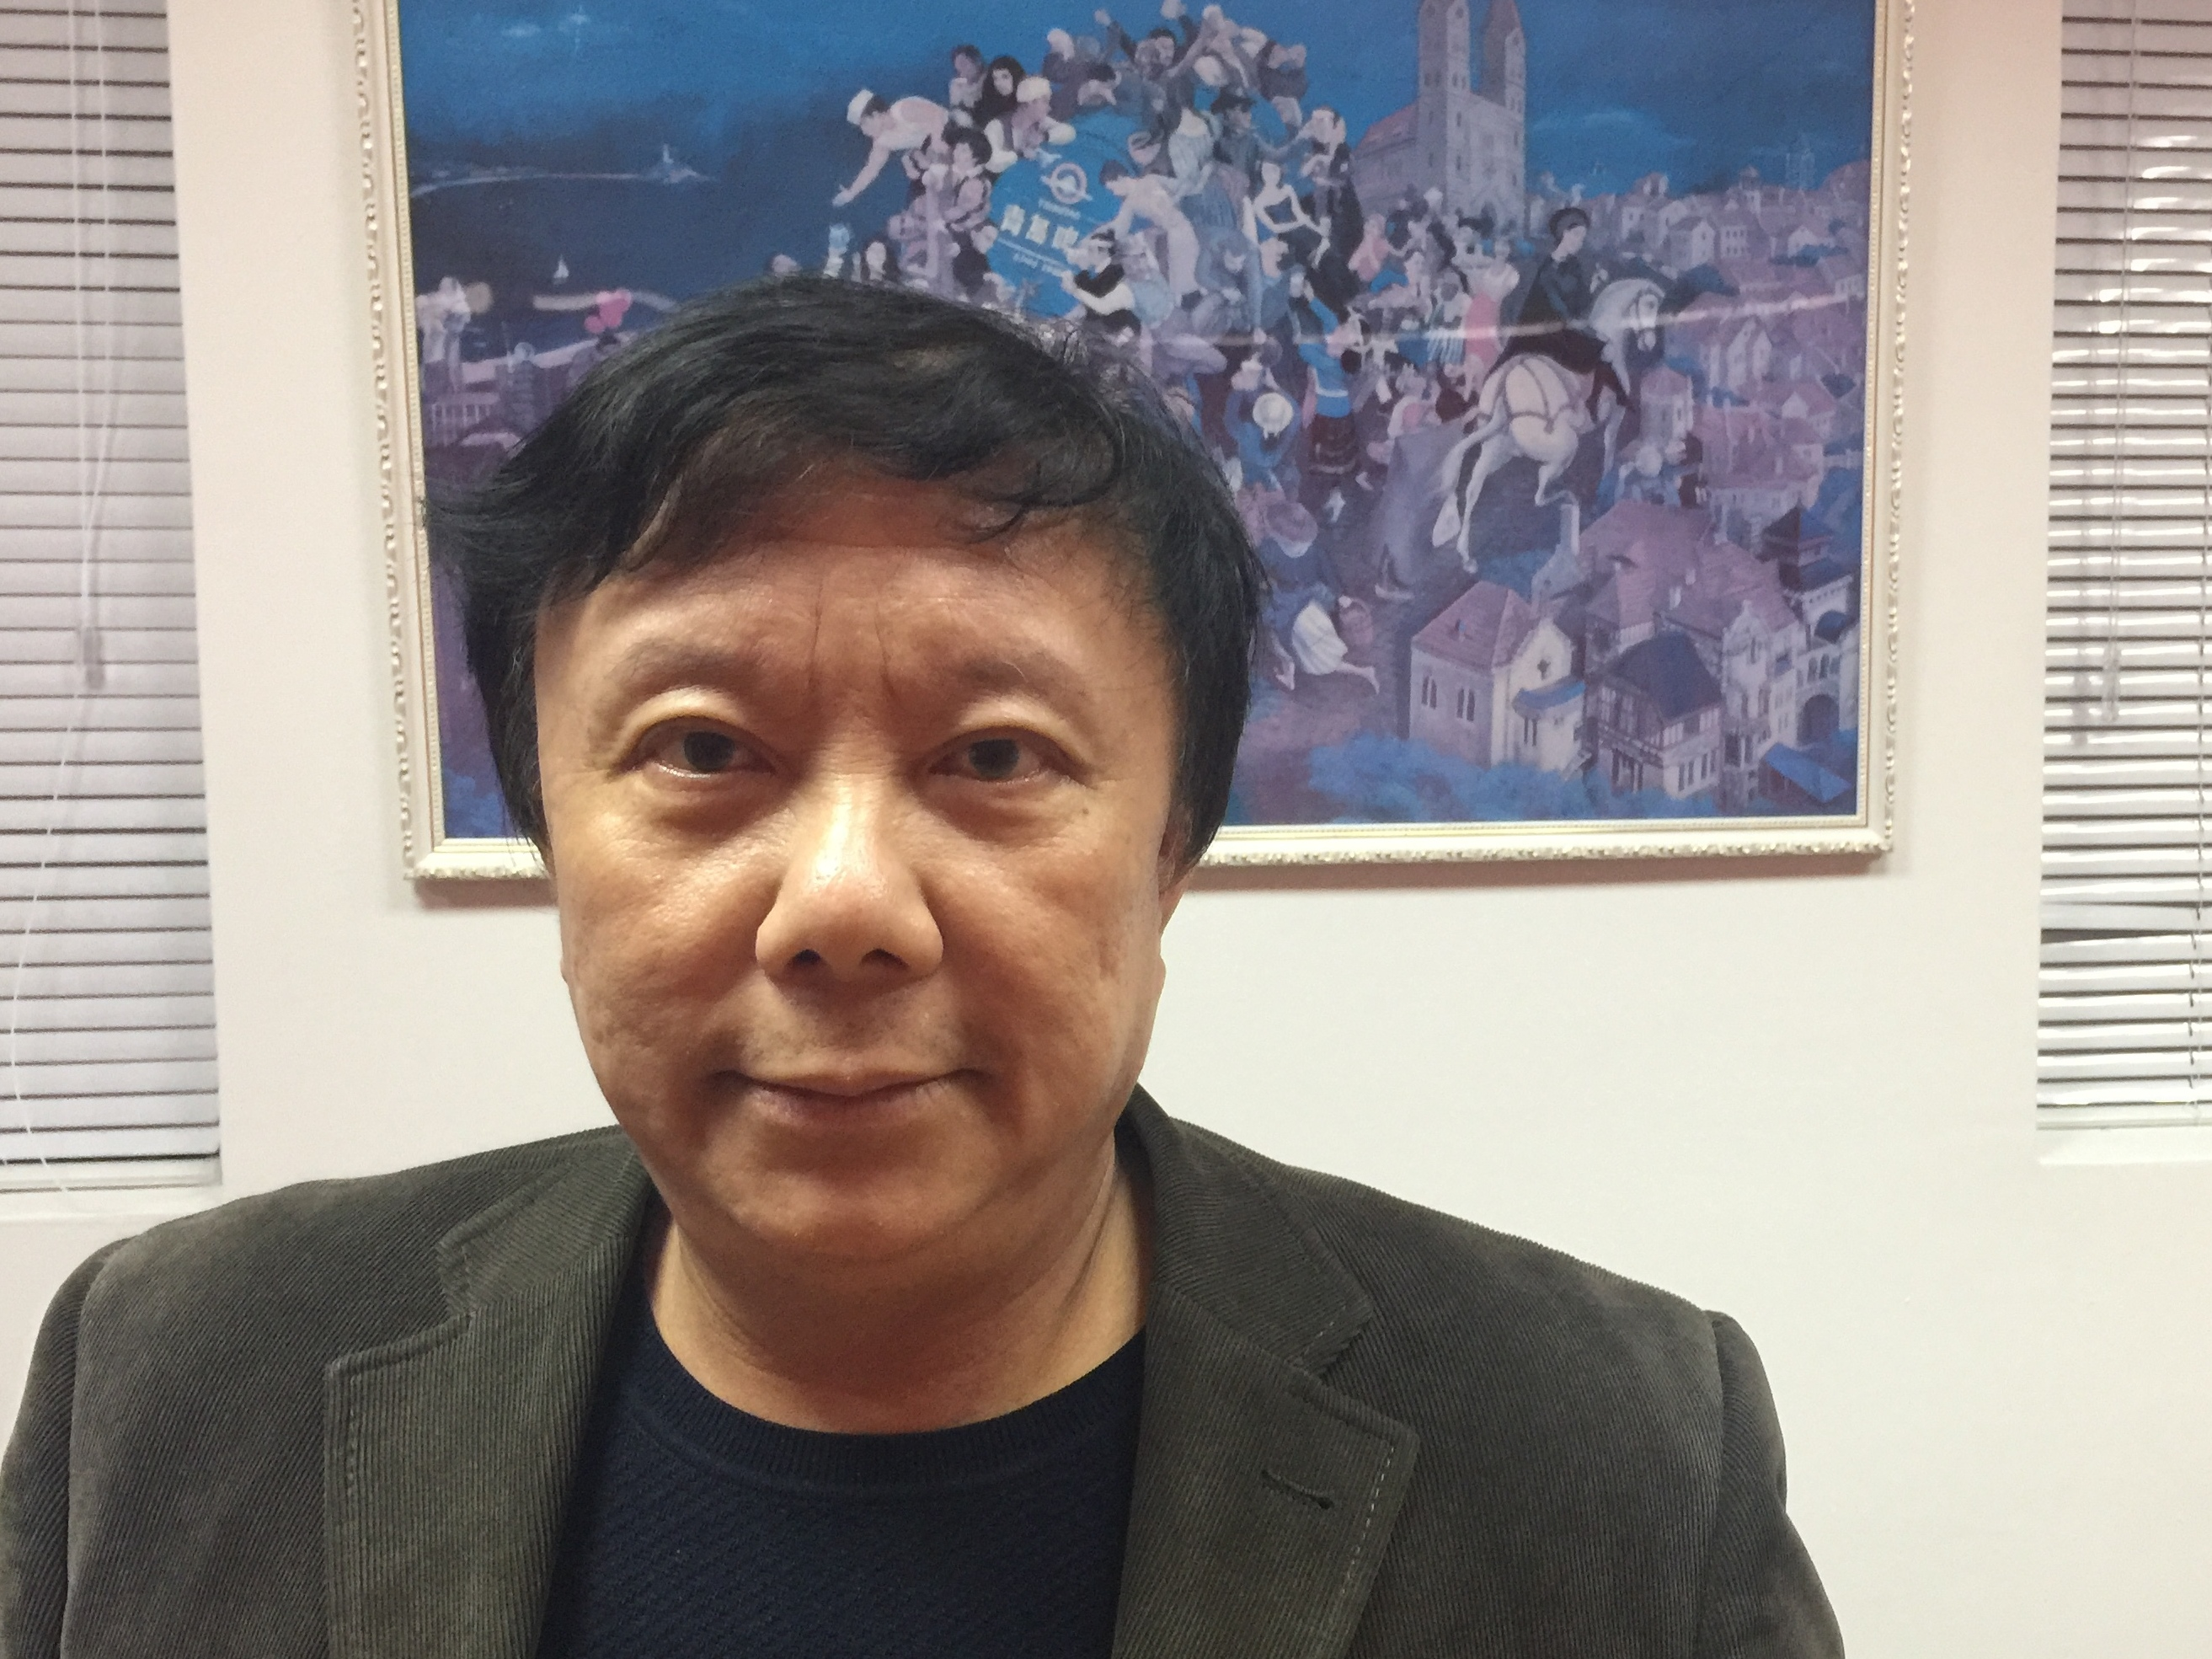 Zhu Dake is a professor at Tongji University in Shanghai. He says the Honest Shanghai app would be better if citizens could rate their own government. Rob Schmitz/NPR.